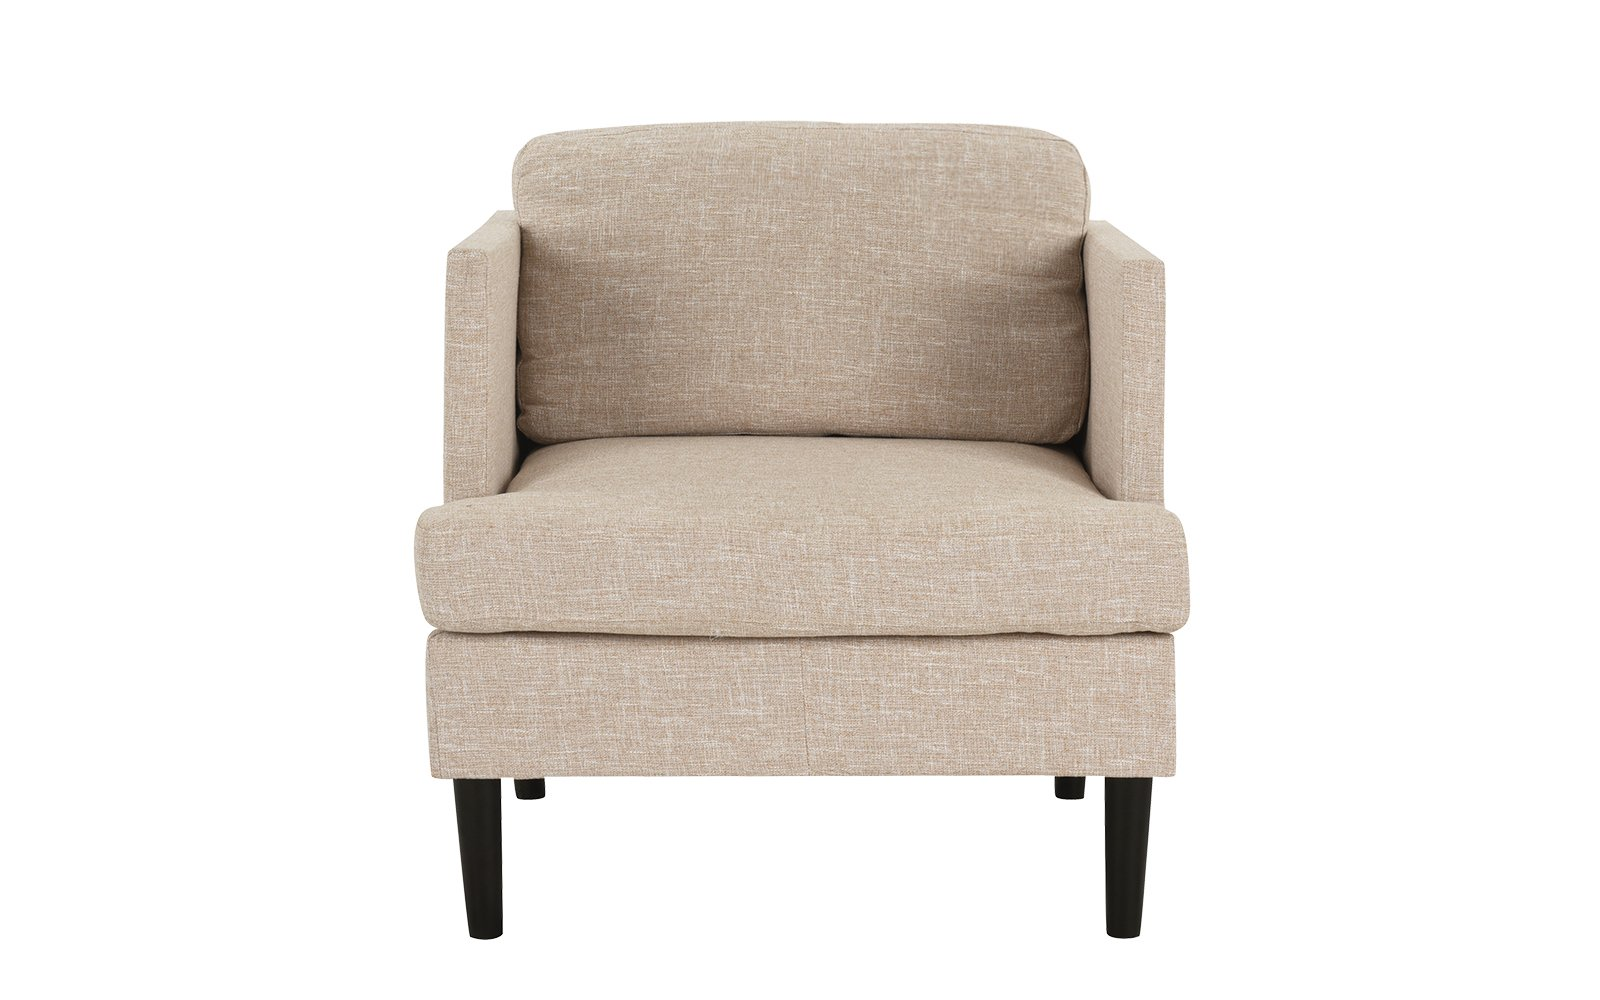 Excellent Details About Beige Oatmeal Mid Century Modern Linen Fabric Armchair Living Room Accent Chair Cjindustries Chair Design For Home Cjindustriesco